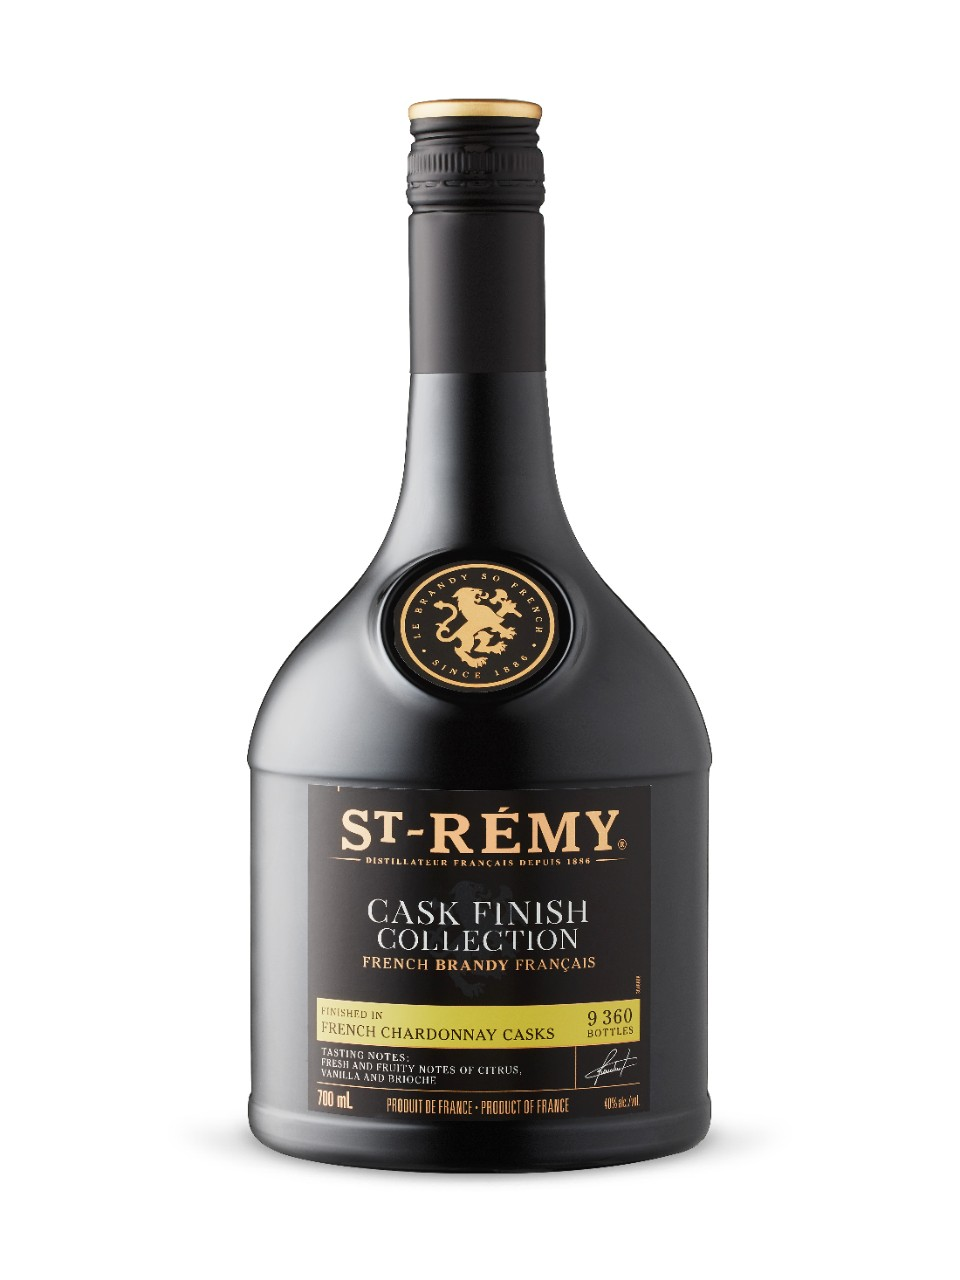 Image for St. Remy Cask Finish Collection from LCBO